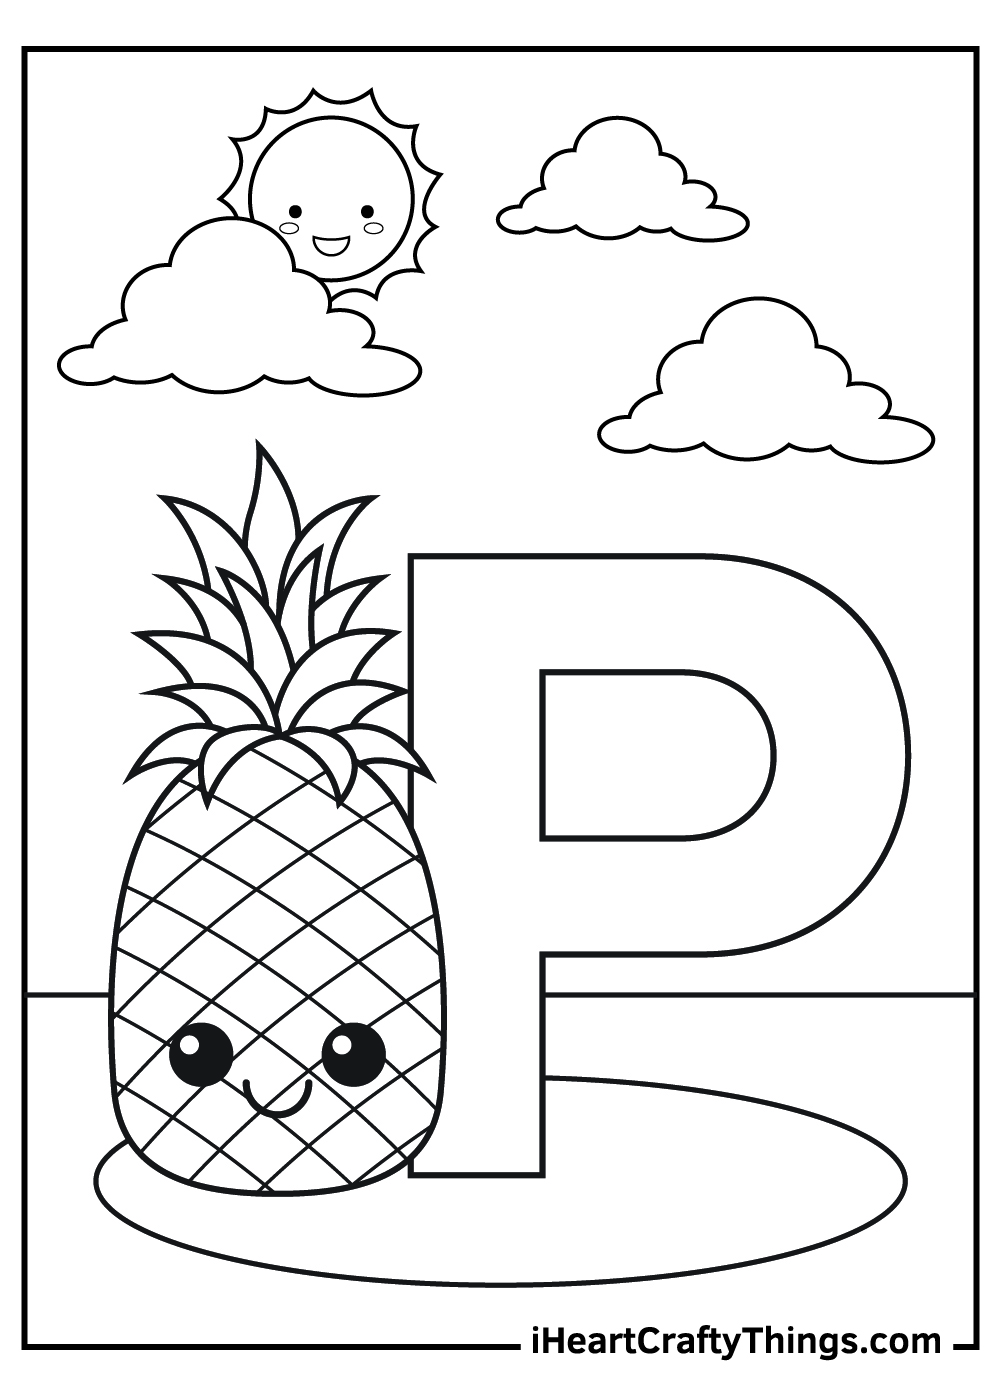 P is for pineapple coloring pages free download